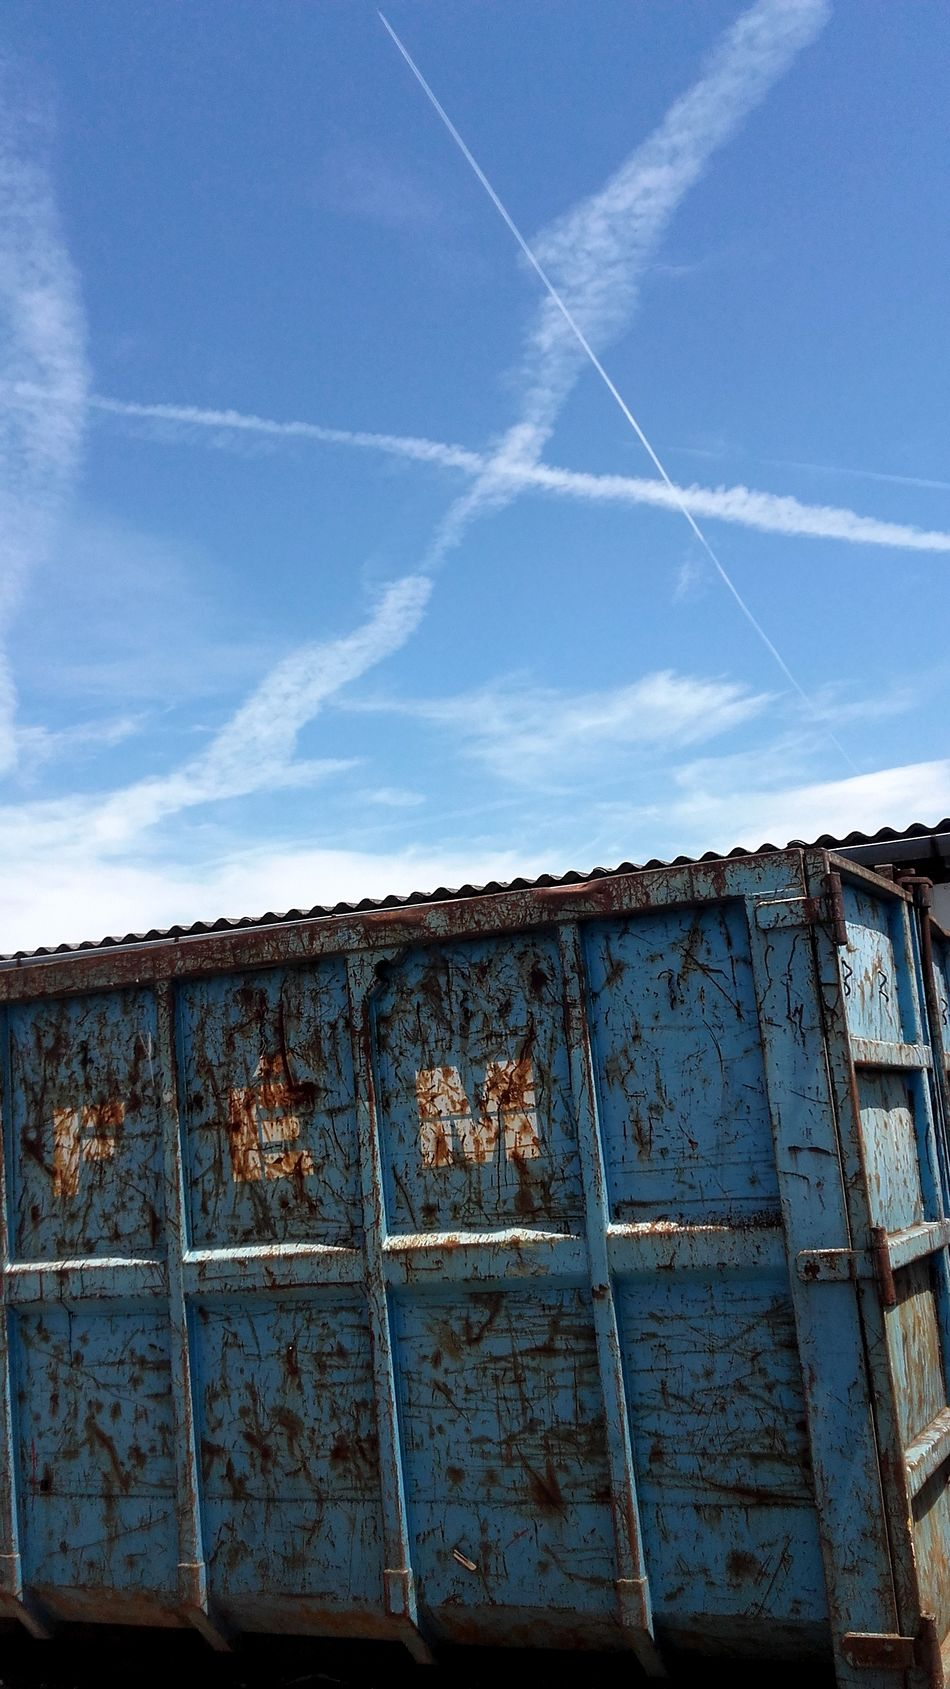 Chemtrails above the container Blue Check This Out Chemtrails Chemtrails Everywhere Chemtrails In Hungary Cloud Cloud - Sky Container Contrail Contrails Contrails Or Chemtrails Metal Things No People Scrap Metal Sky Storage